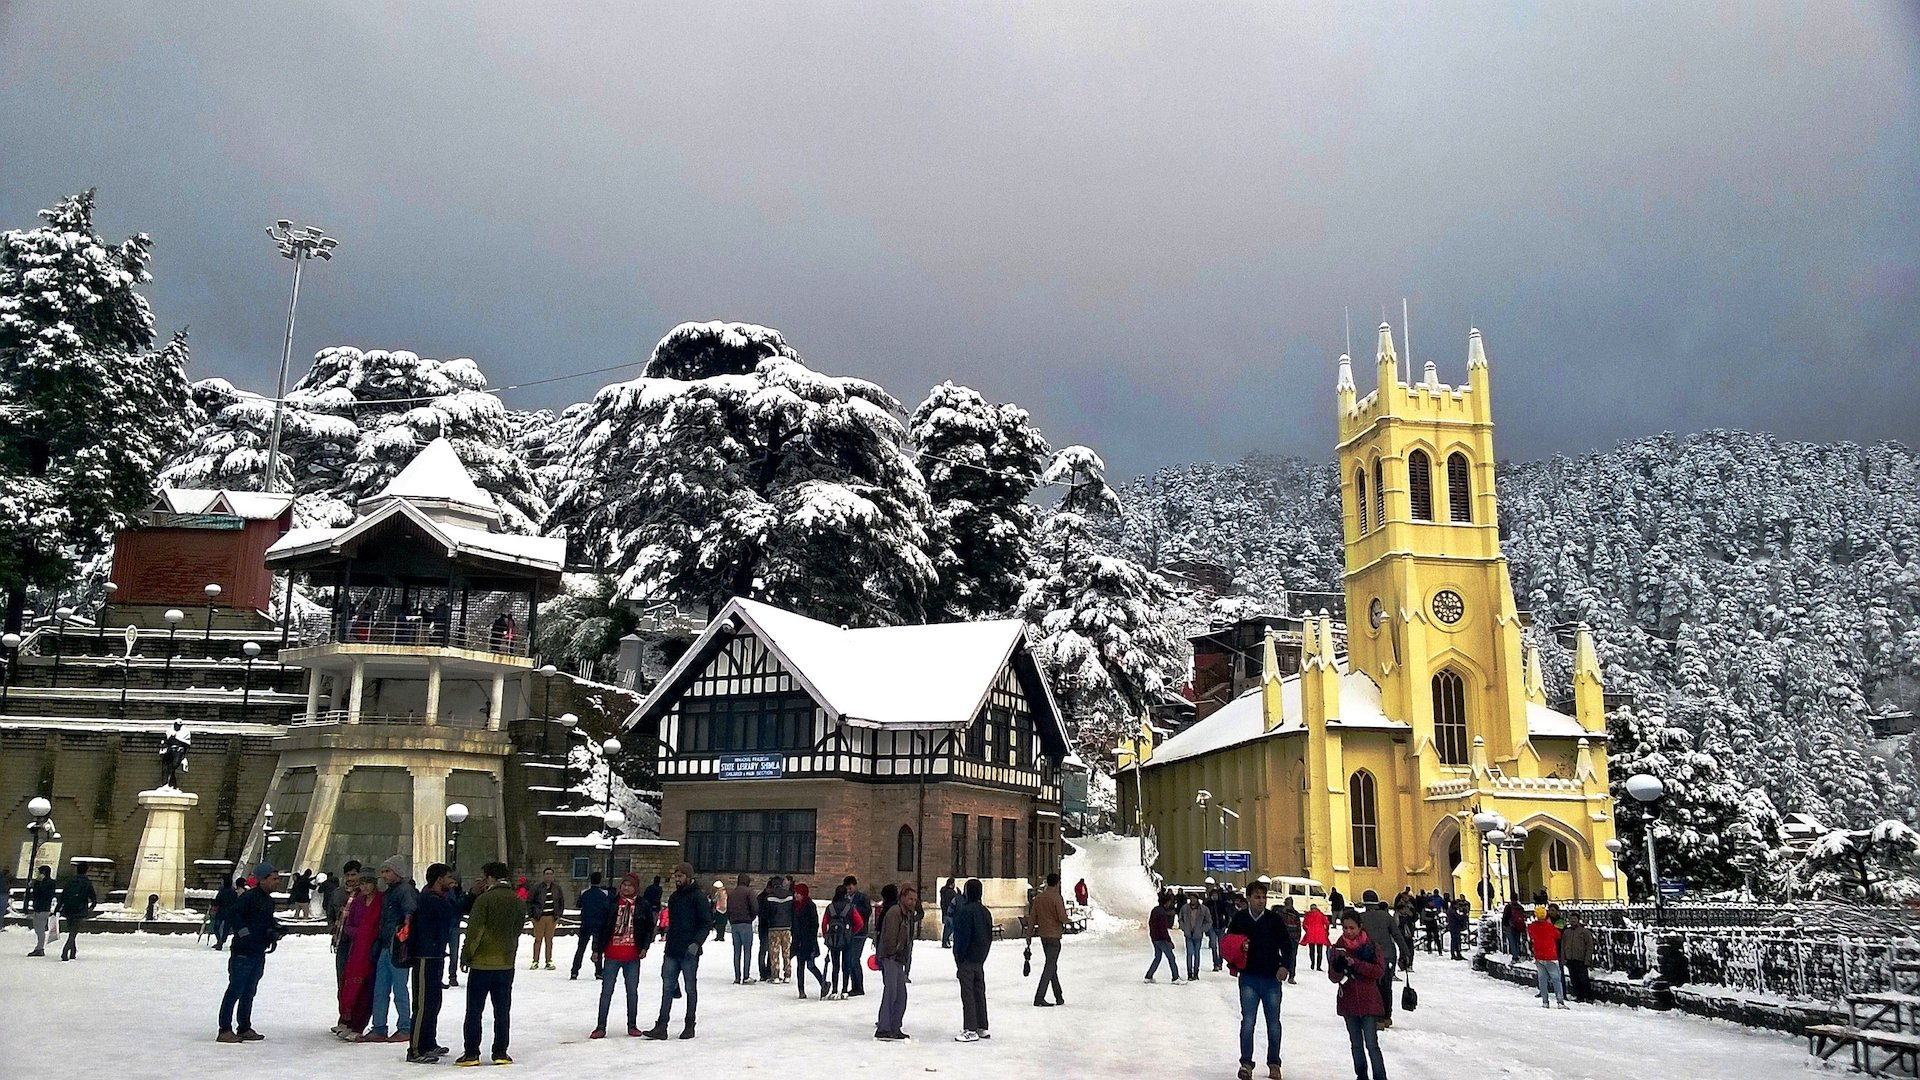 Shimla Manali tour from Chandigarh / Delhi - Honeymoon Special